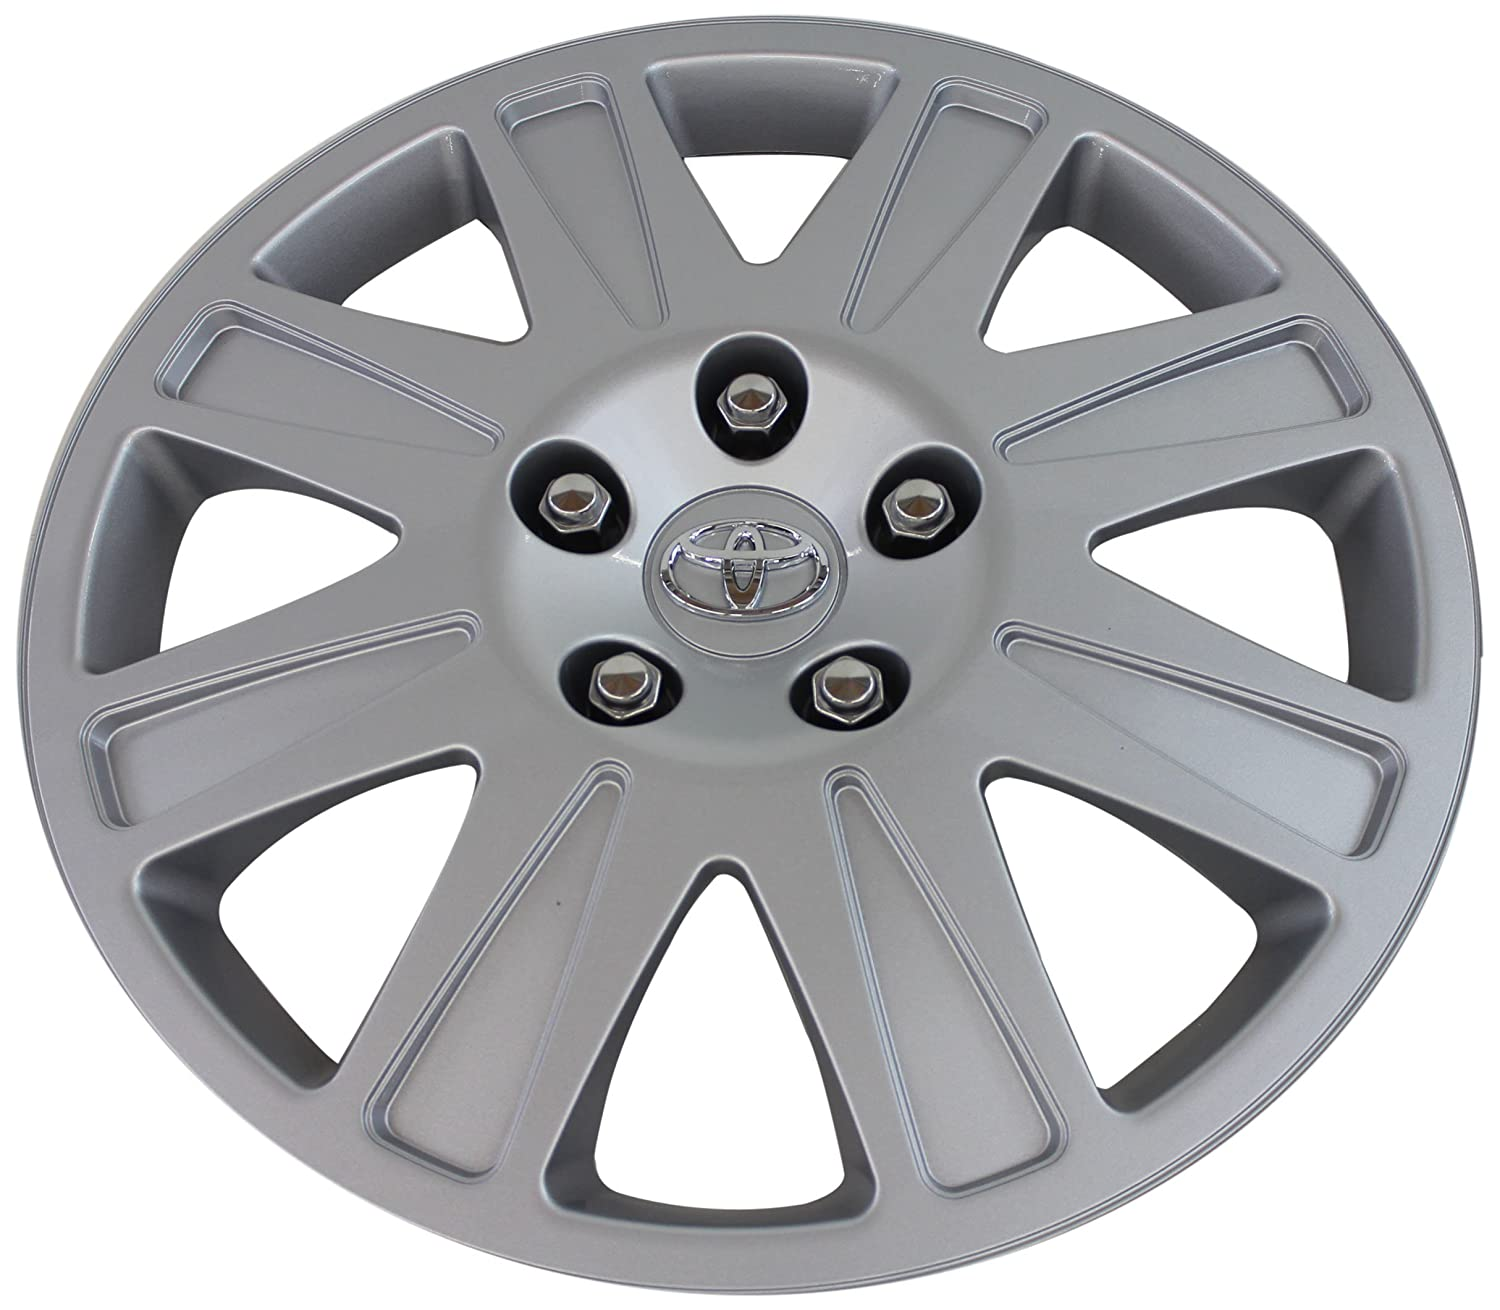 TOYOTA Genuine Accessories PT385-02110-WC 16 Wheel Cover